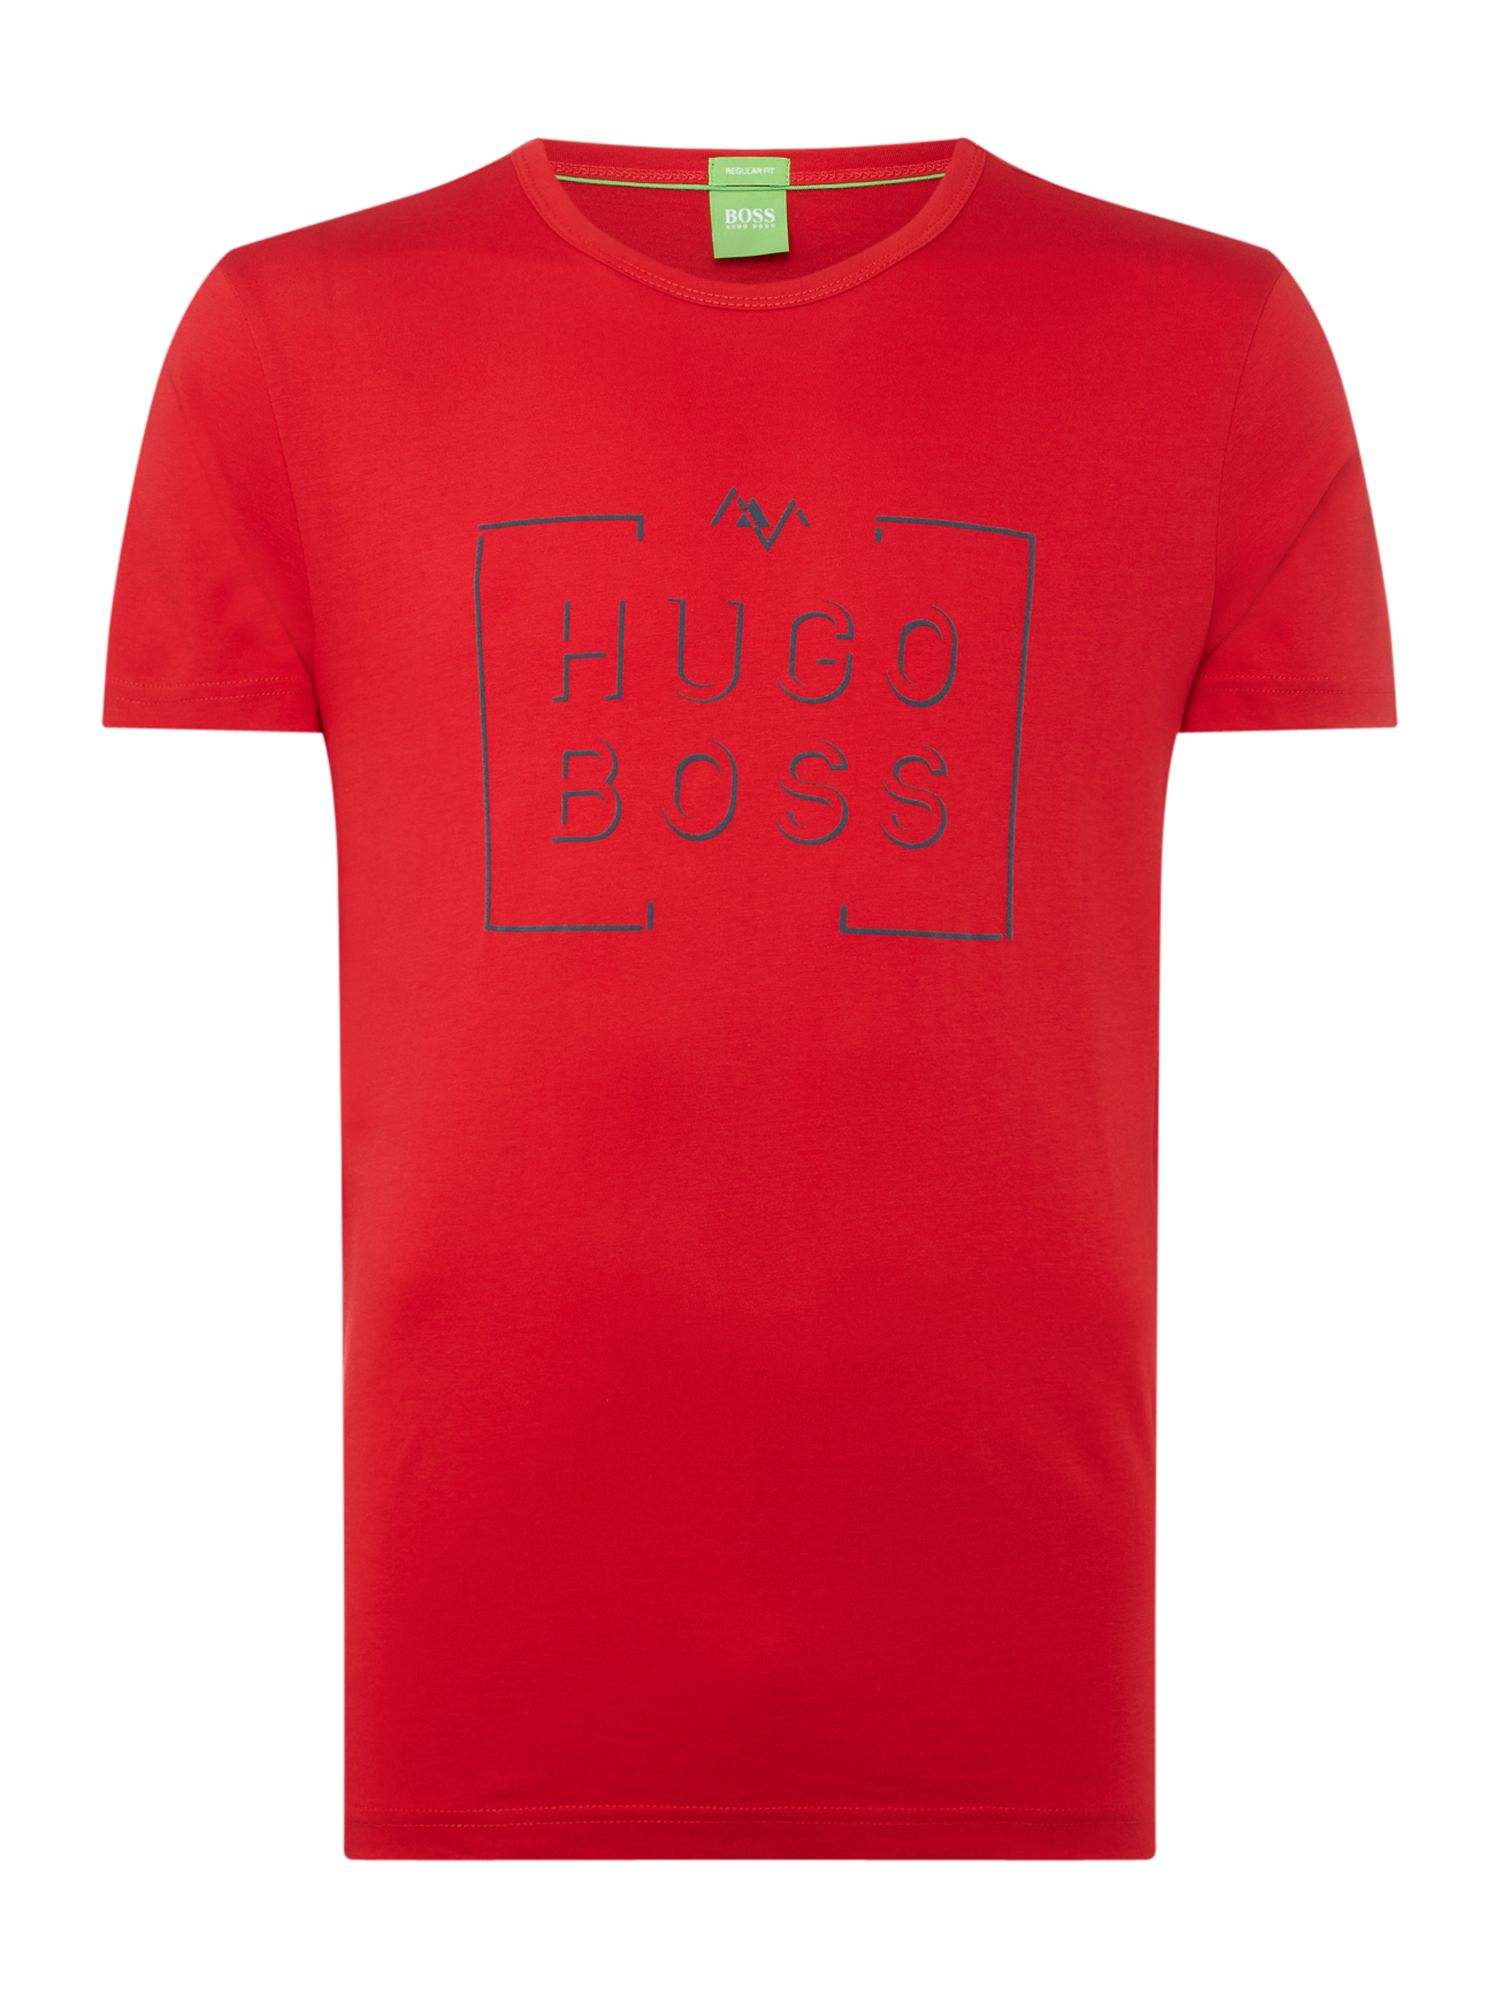 Men's Hugo Boss Box logo crew neck tee, Red